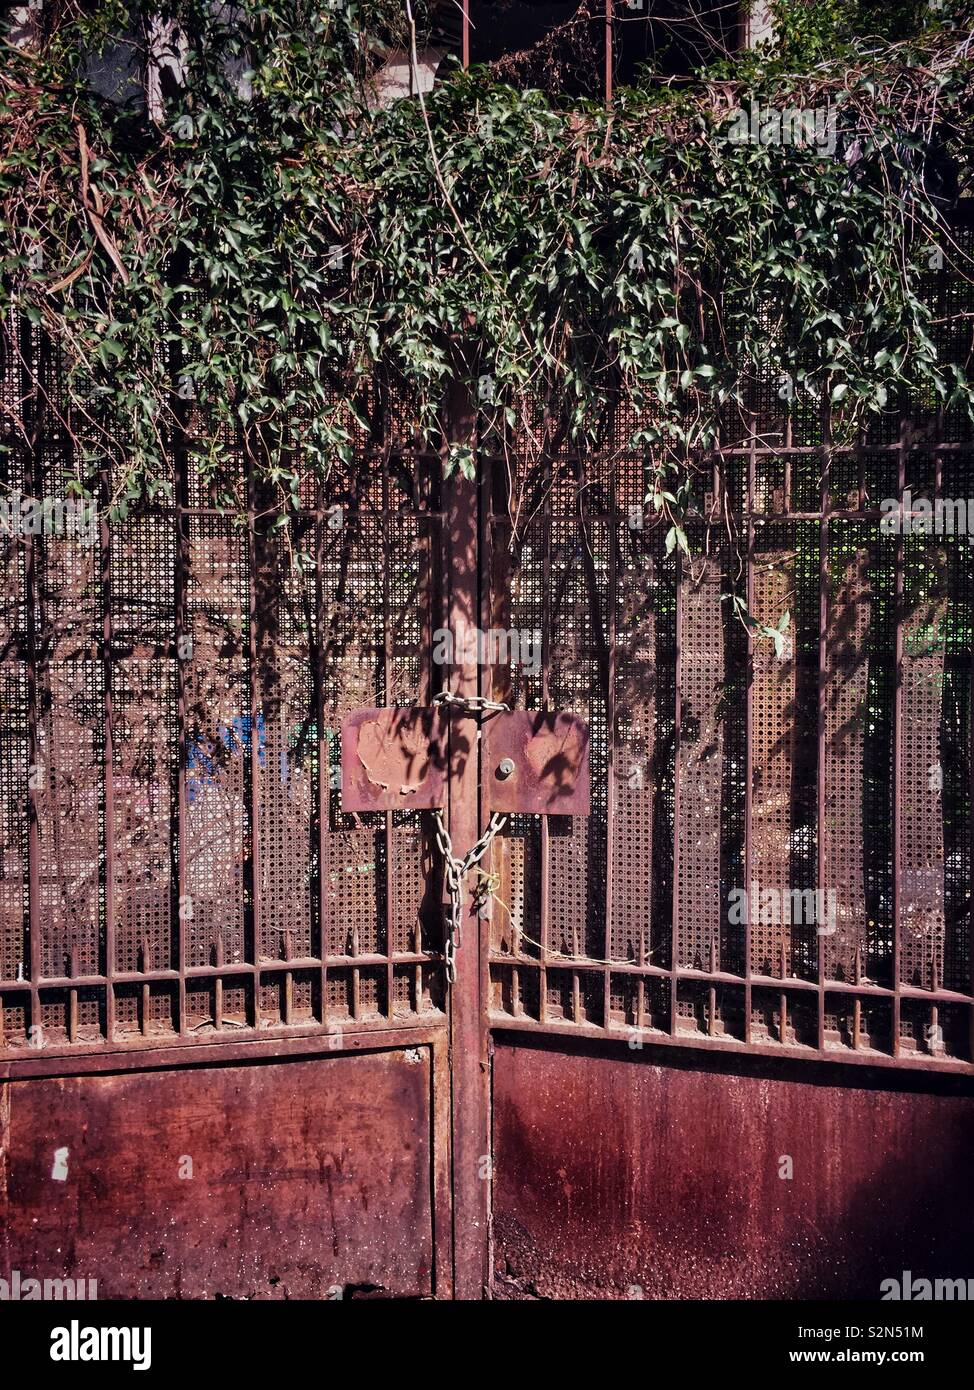 Overgrown plants covering abandoned gate - Stock Image